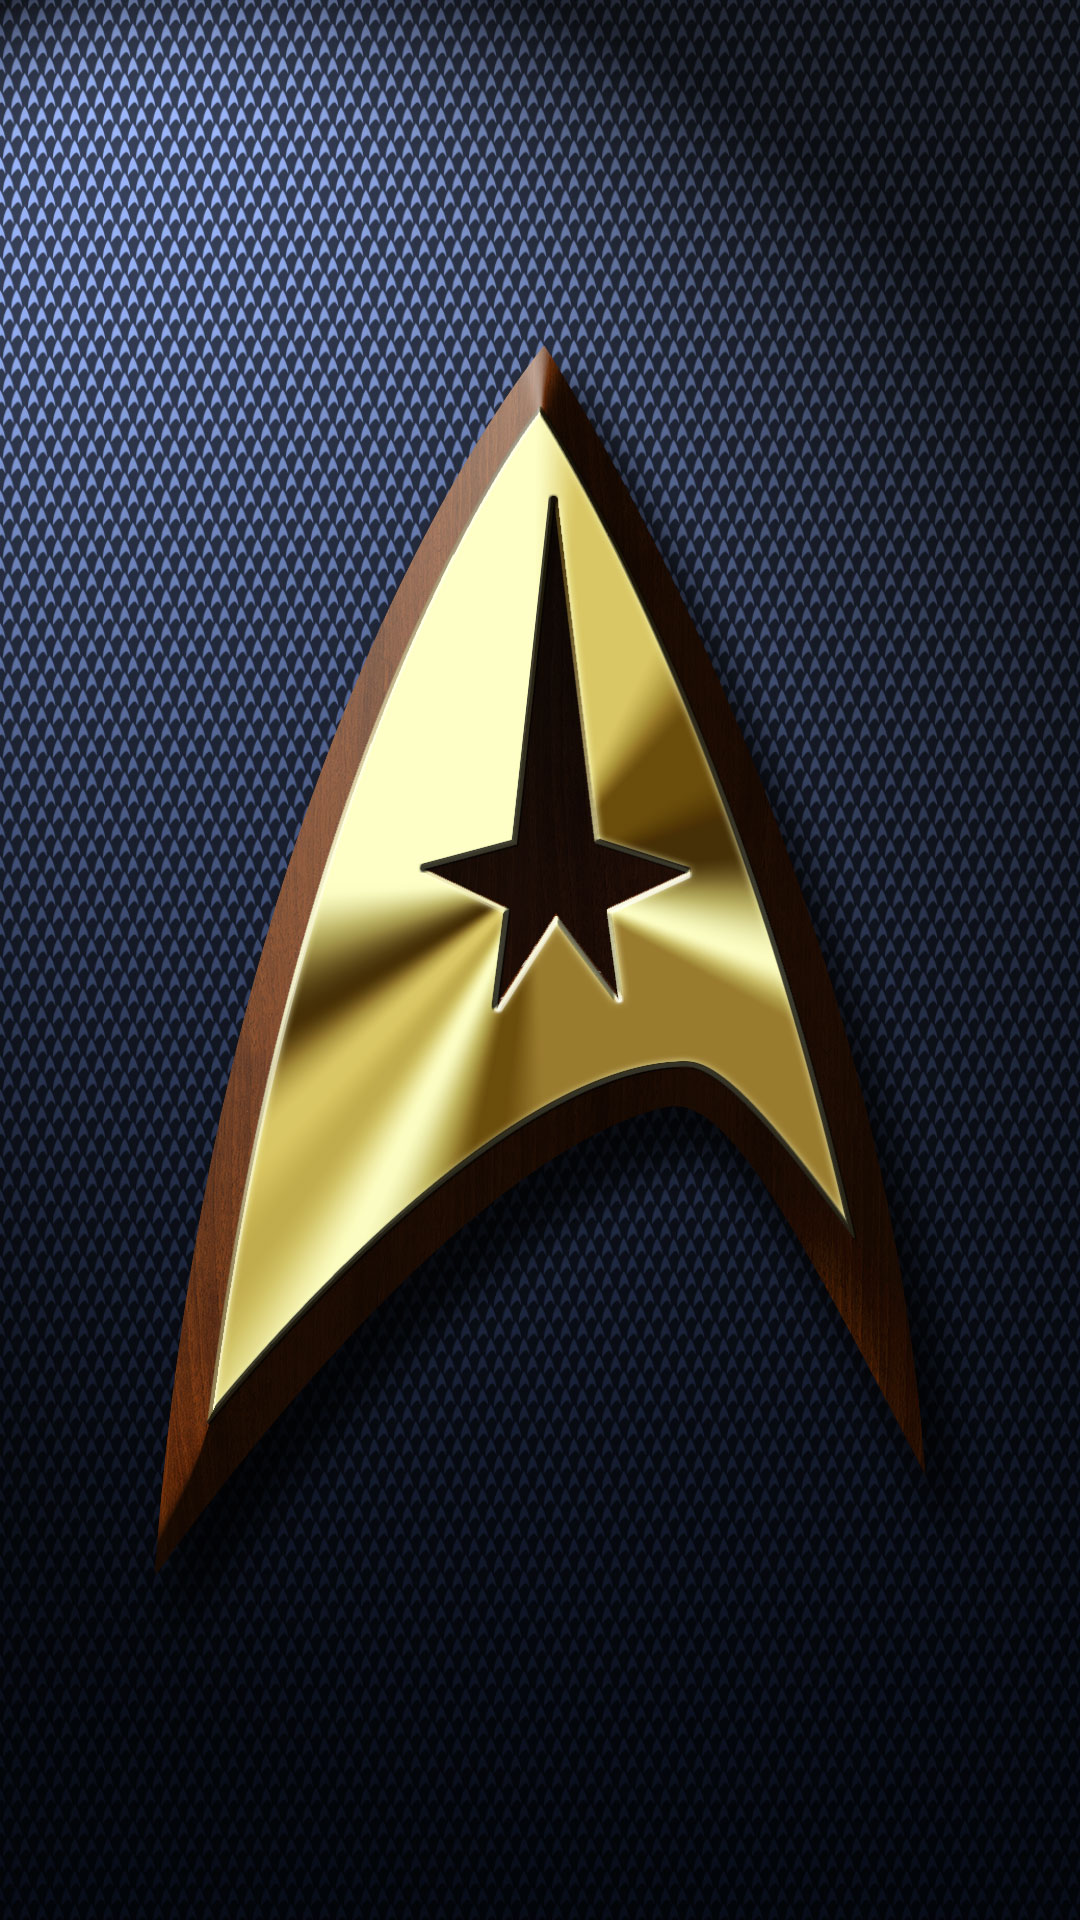 Classic Iphone Wallpaper For Iphone X The Final Frontier Progress Update The Home Stretch